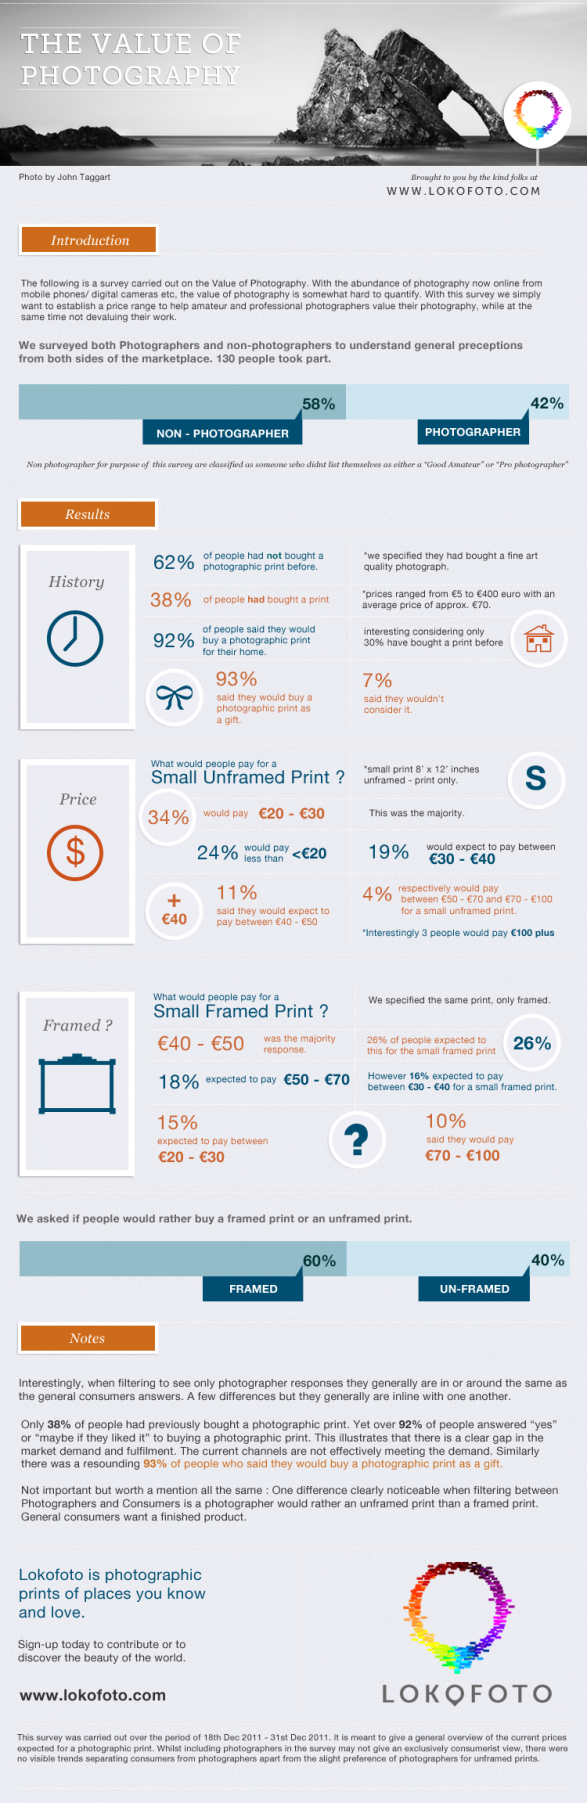 The Value of Photography (Infographic)   the value of photography 502910bc0d9bd w587